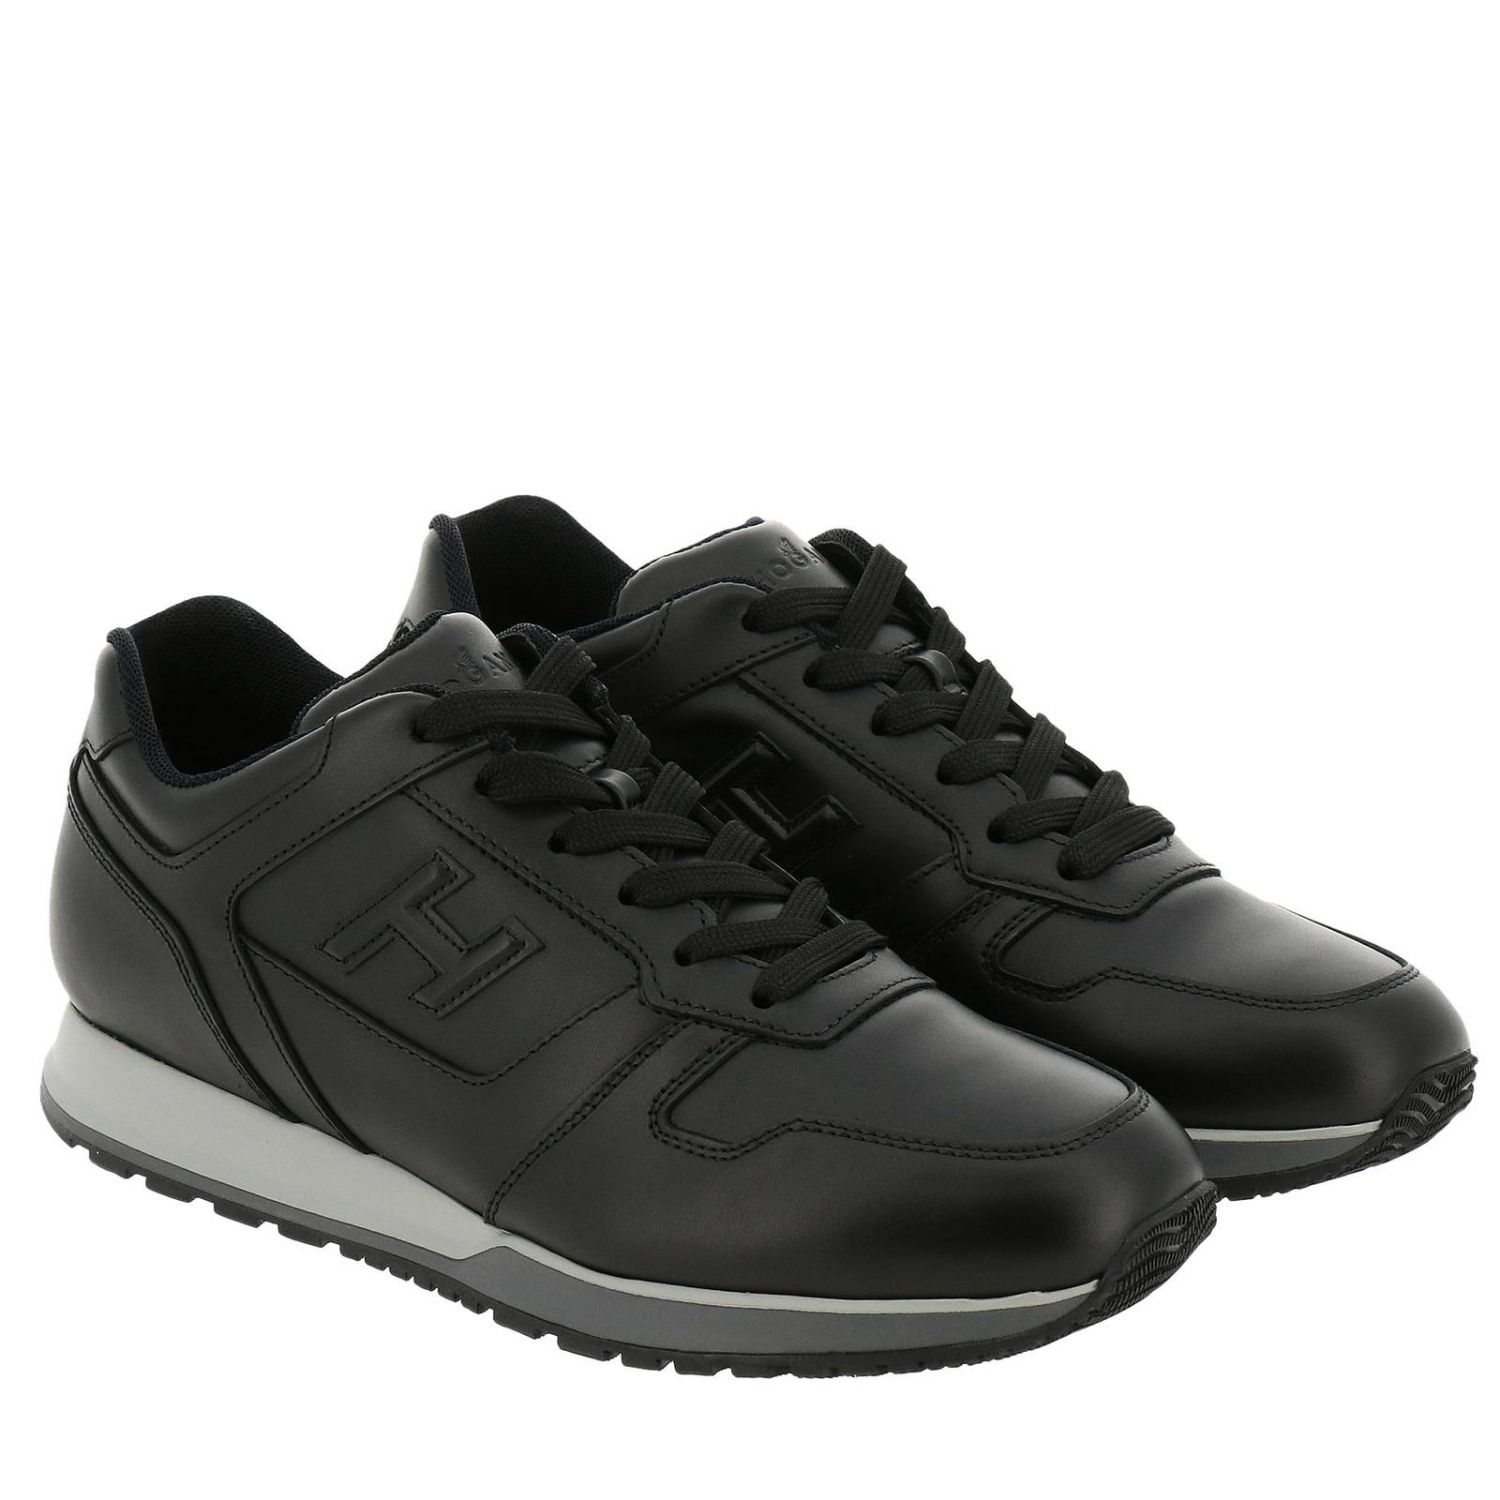 Sneakers Rebel 321 in pelle con H in 3D nero 2